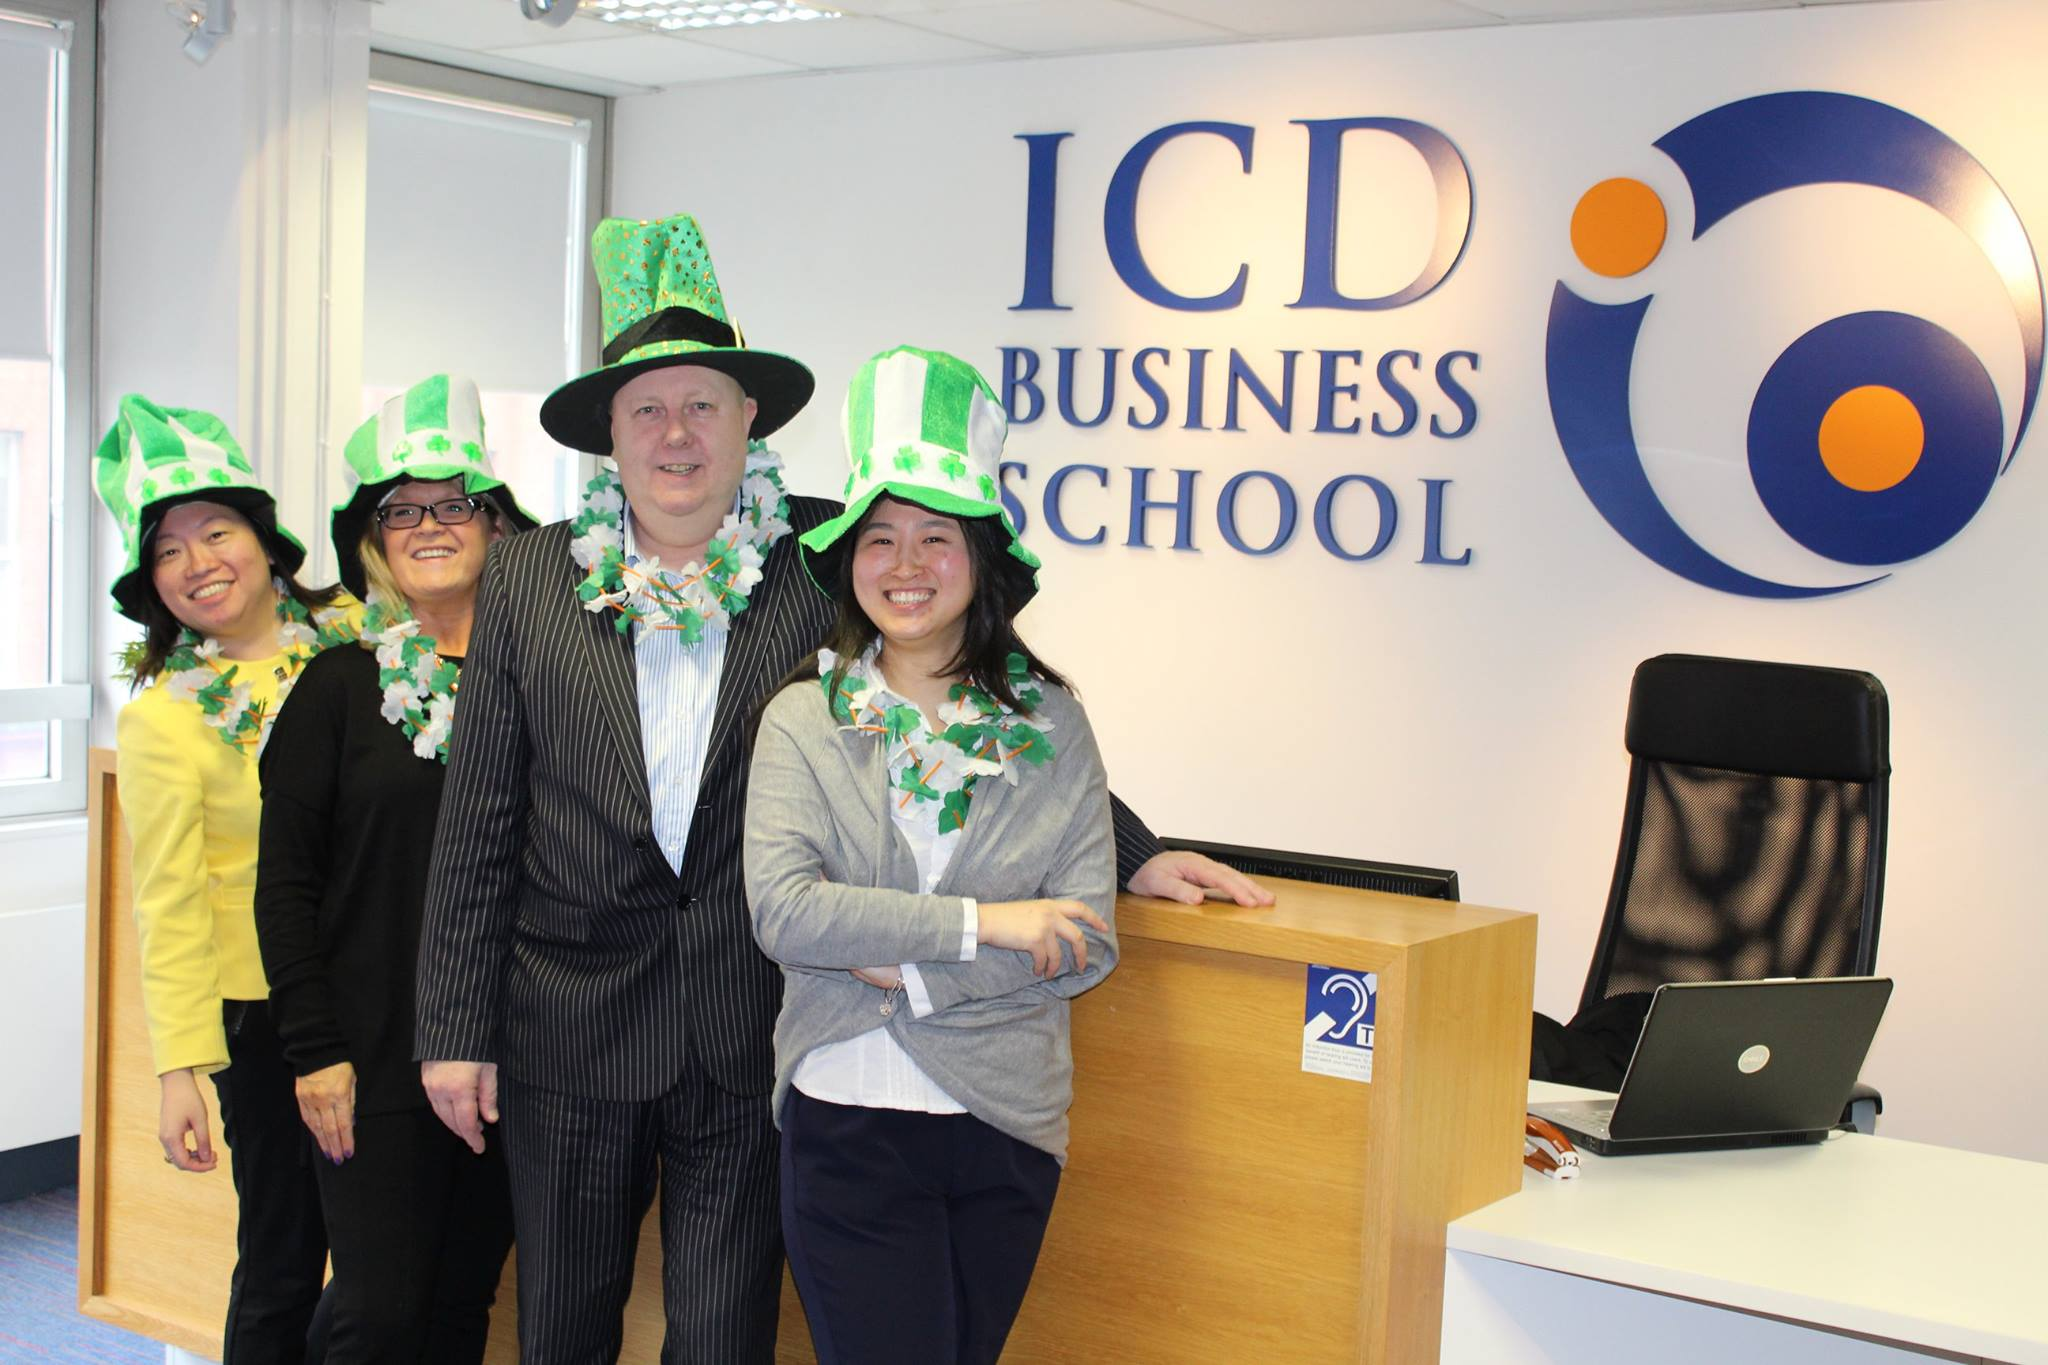 ICD Business School Dublin Campus